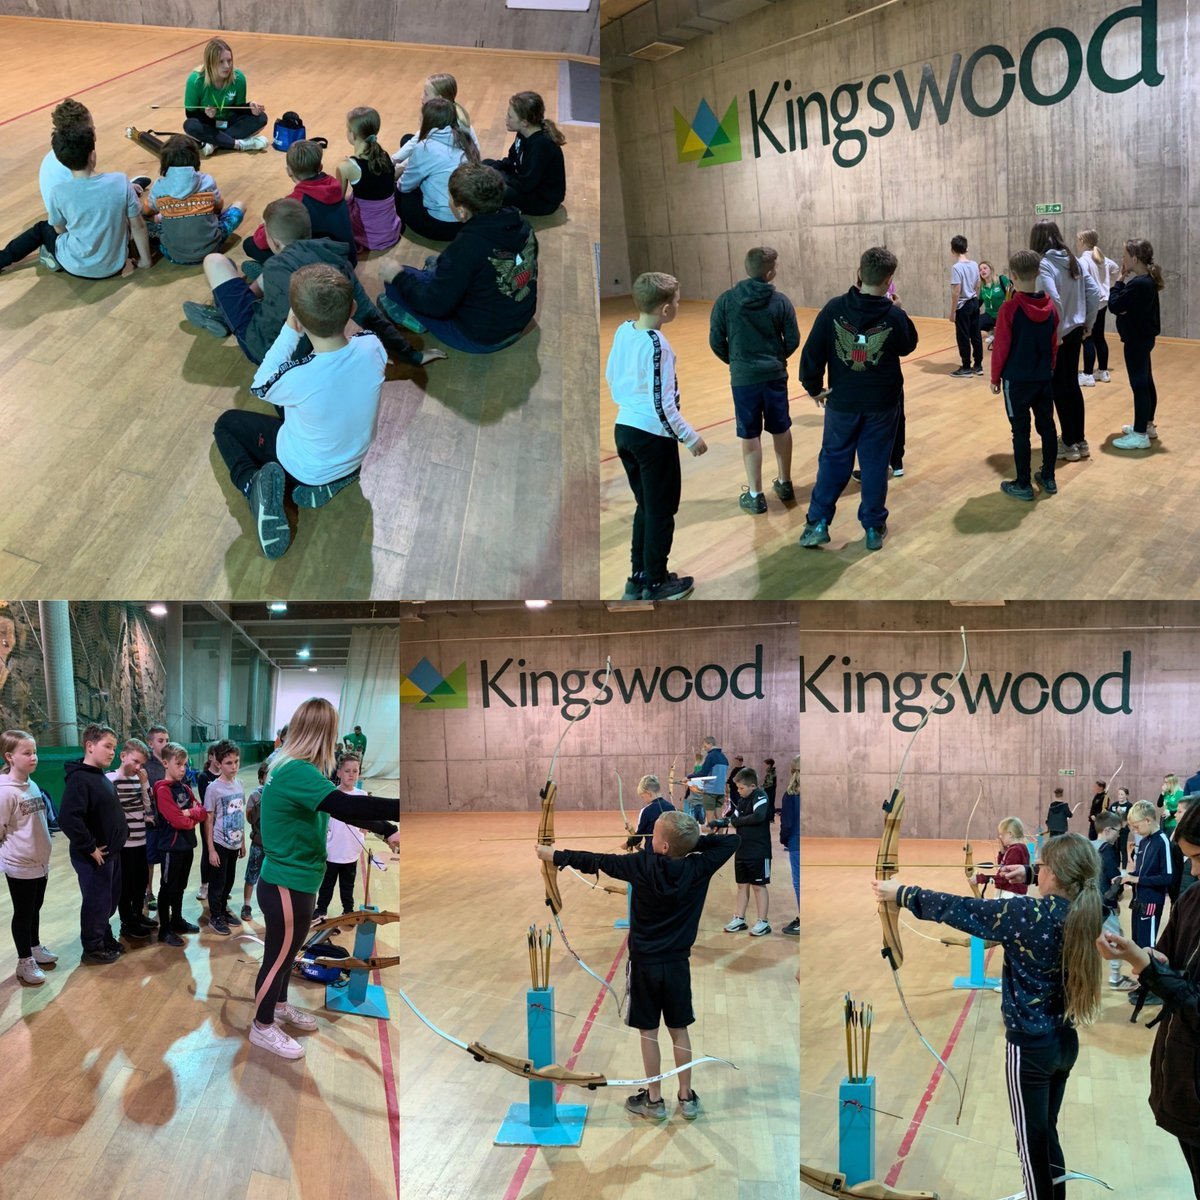 Groups 2 and 3 had a go at archery and crate stack this afternoon. Again, it was lovely to see the children encouraging each other and working together as a team.